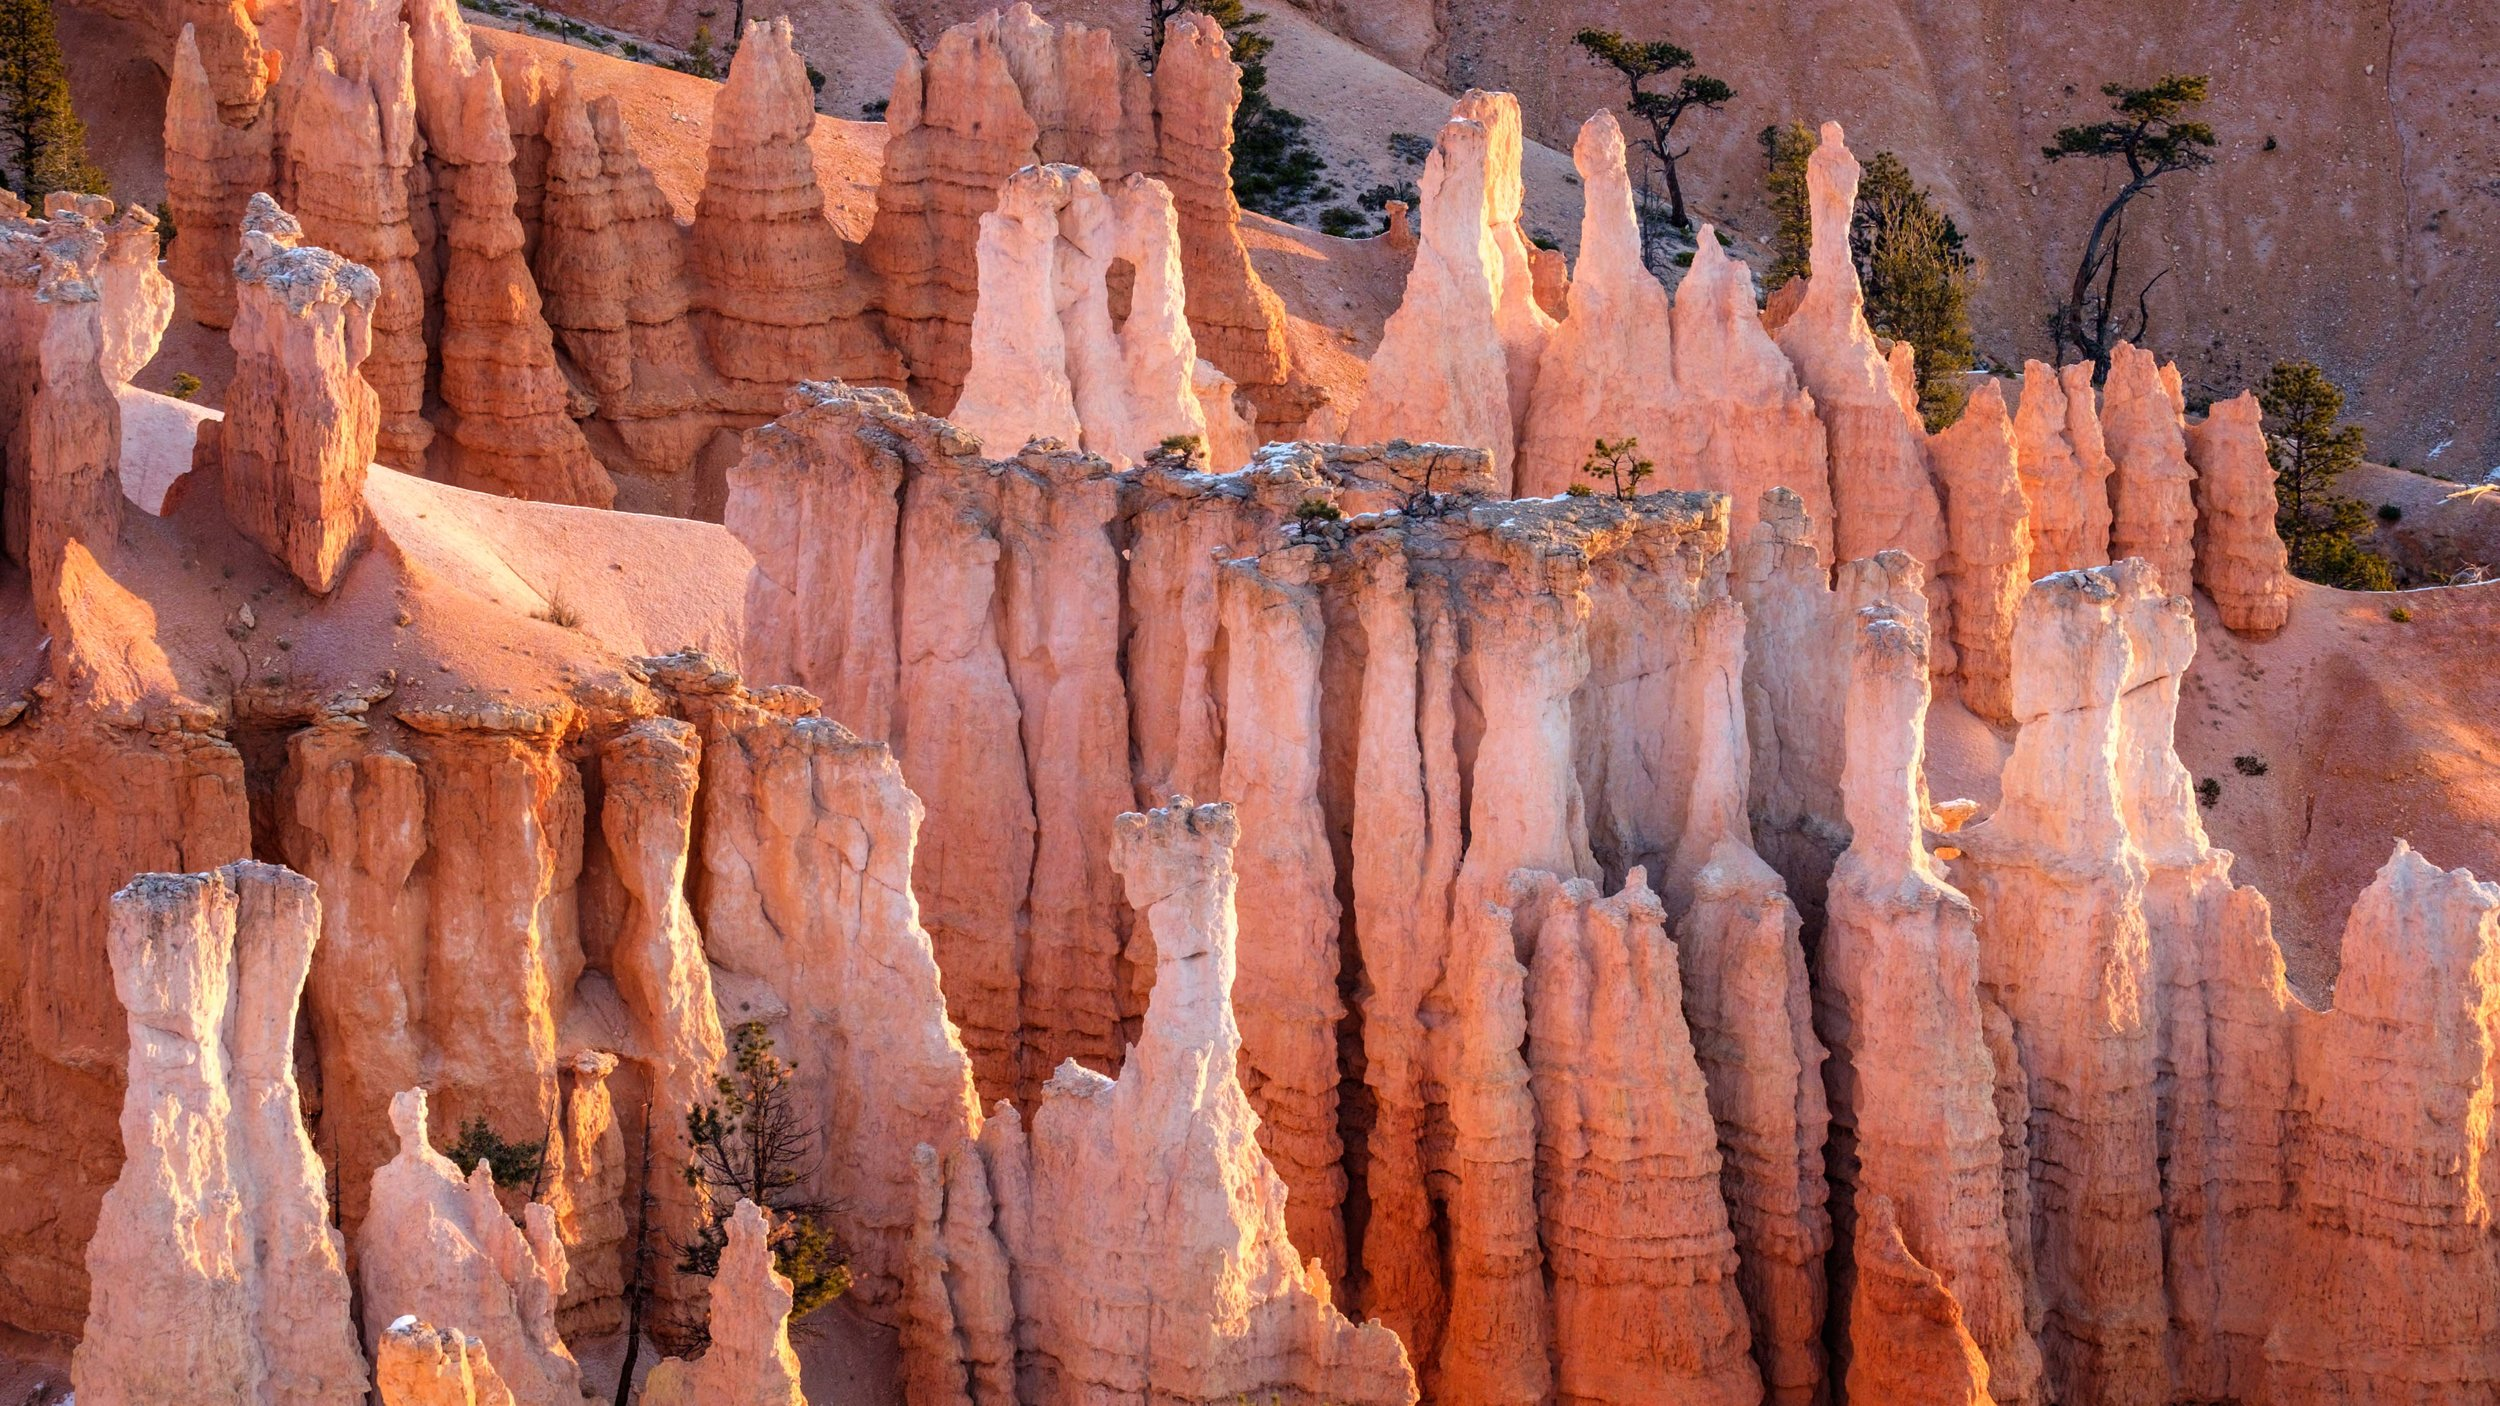 The hoodoos are too numerous to count!